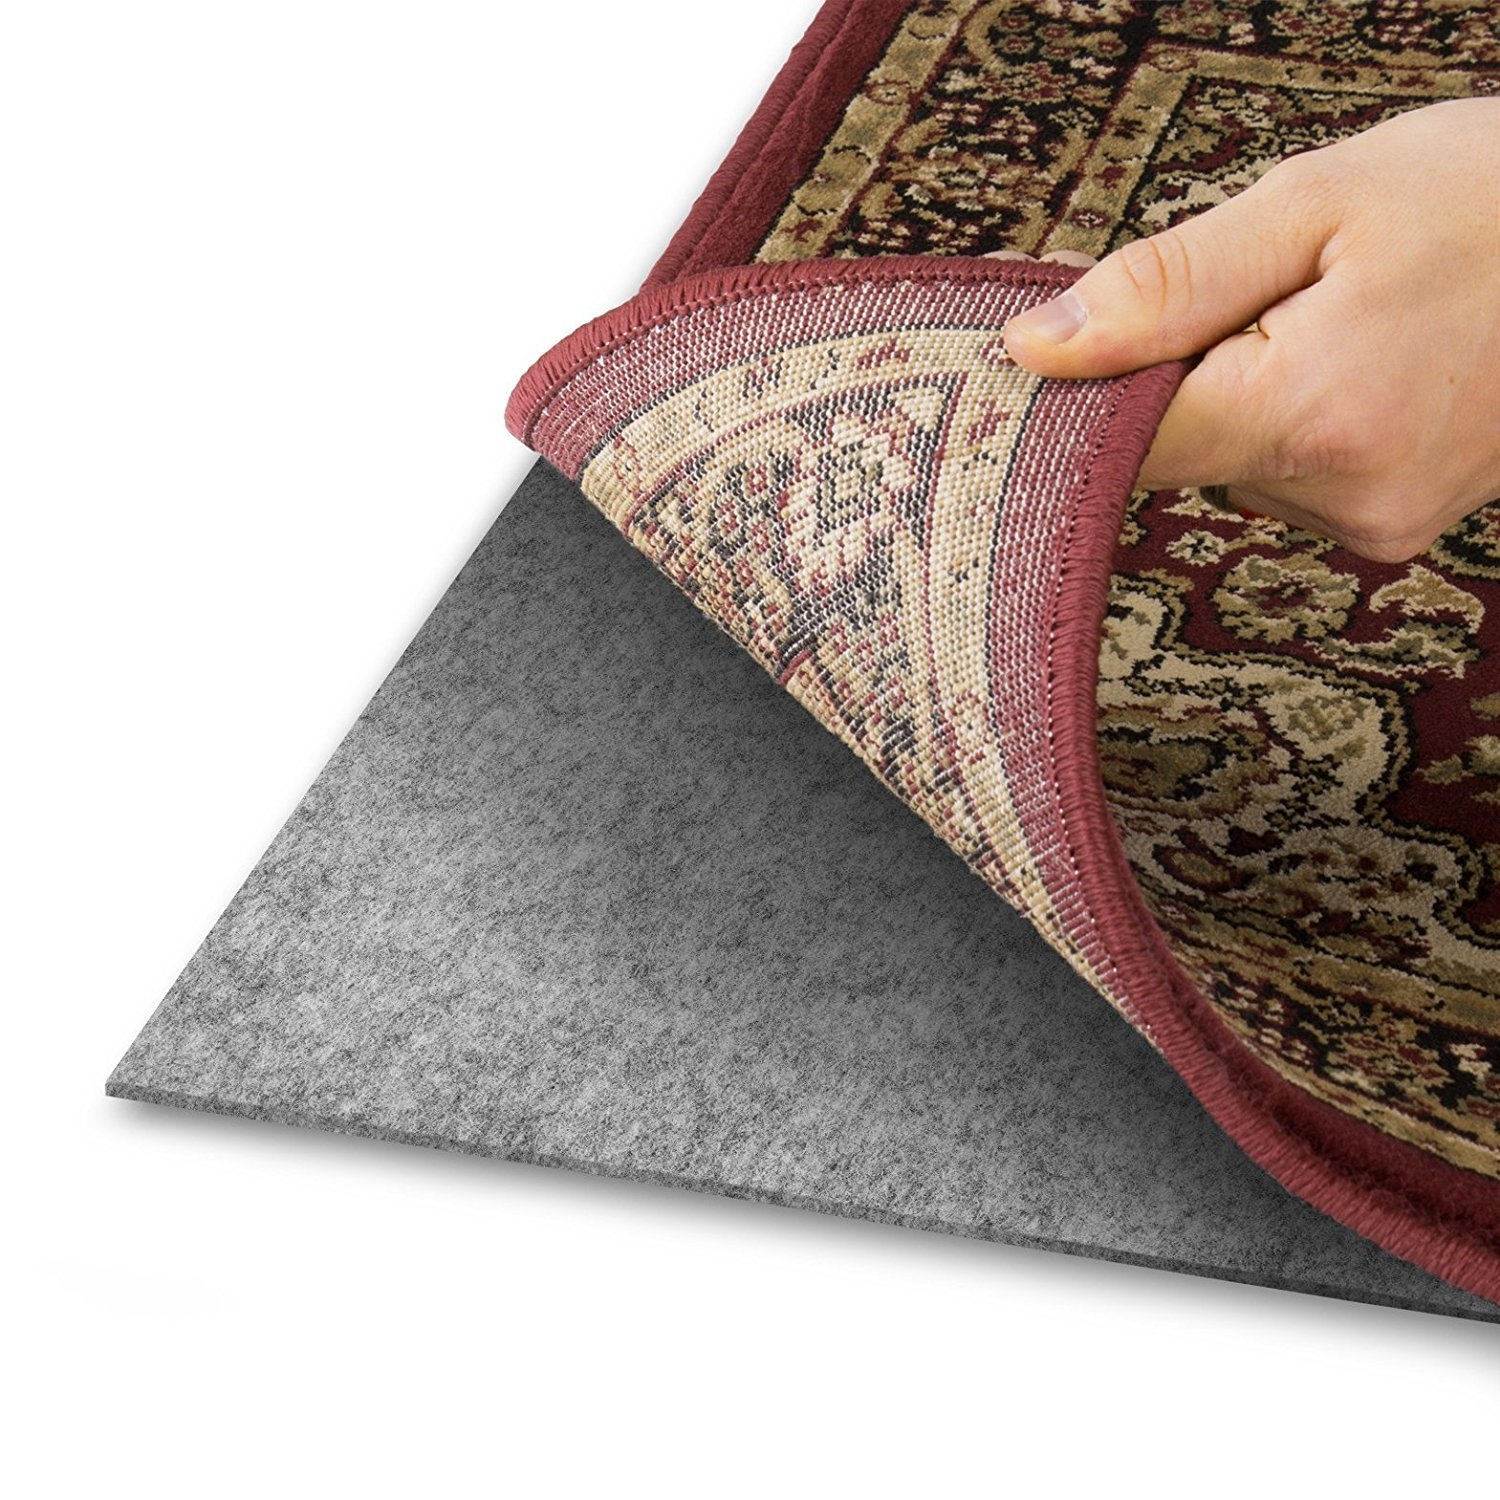 Shop Amazon Rug Pads With Non Slip Rugs (View 10 of 15)